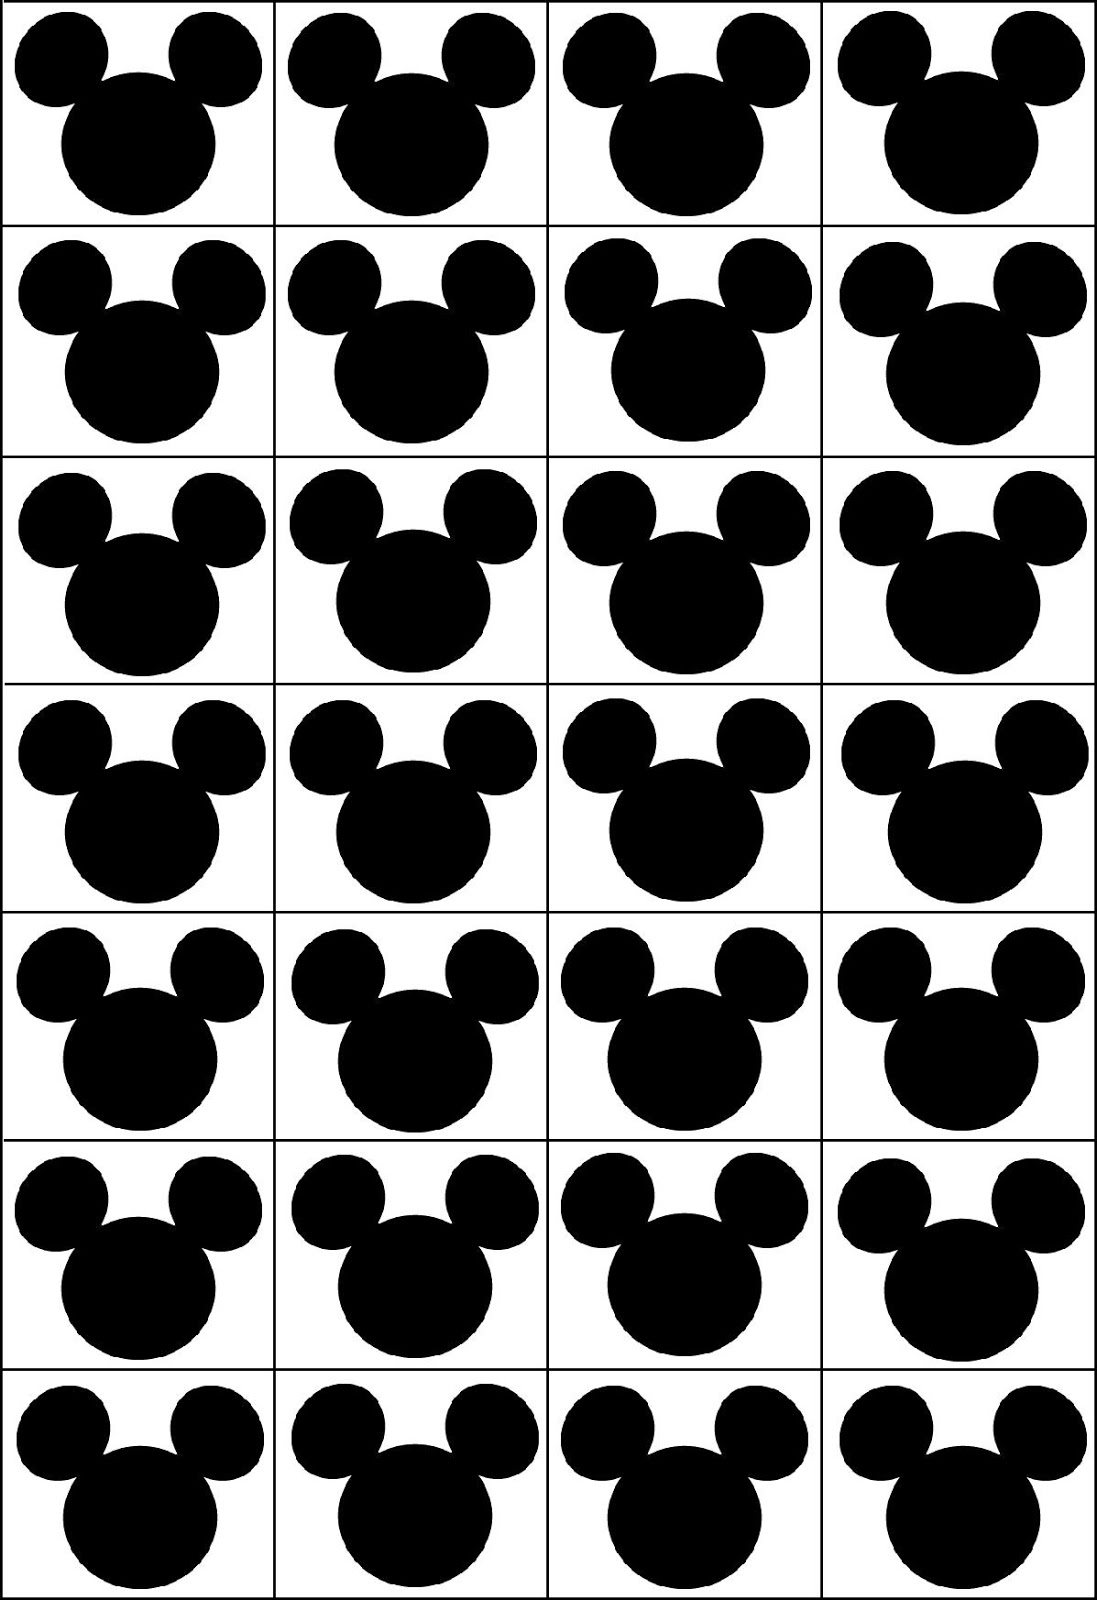 graphic relating to Printable Bingo Chips referred to as RobbyGurls Creations: Disney Bingo